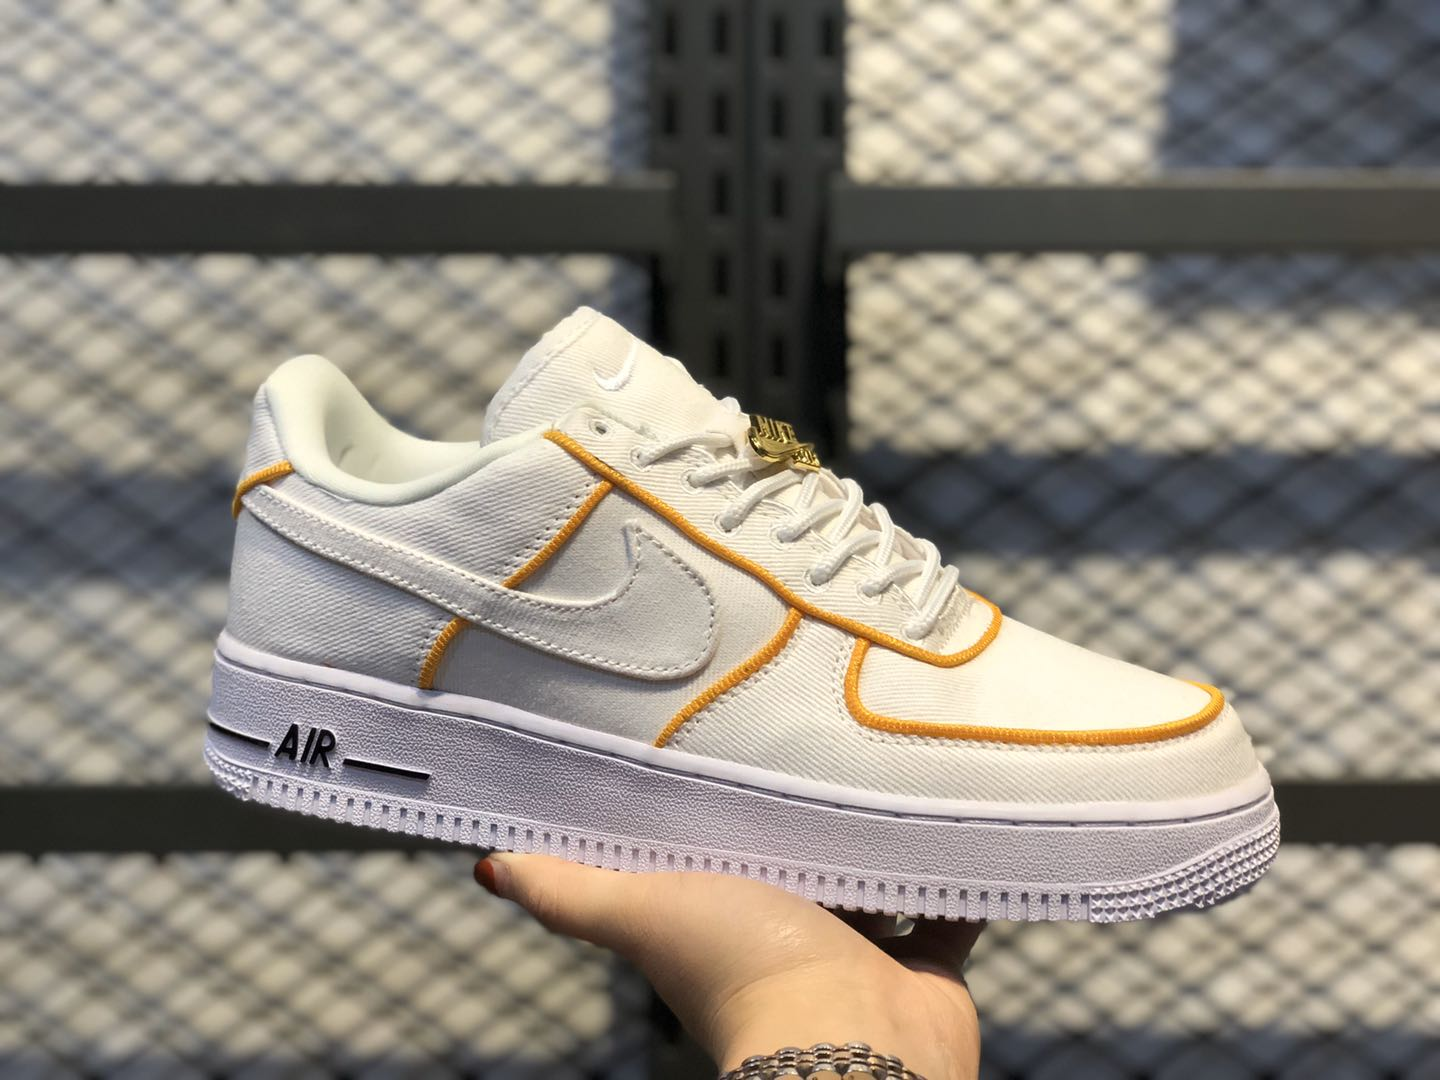 Nike Air Force 1 Low Upstep White